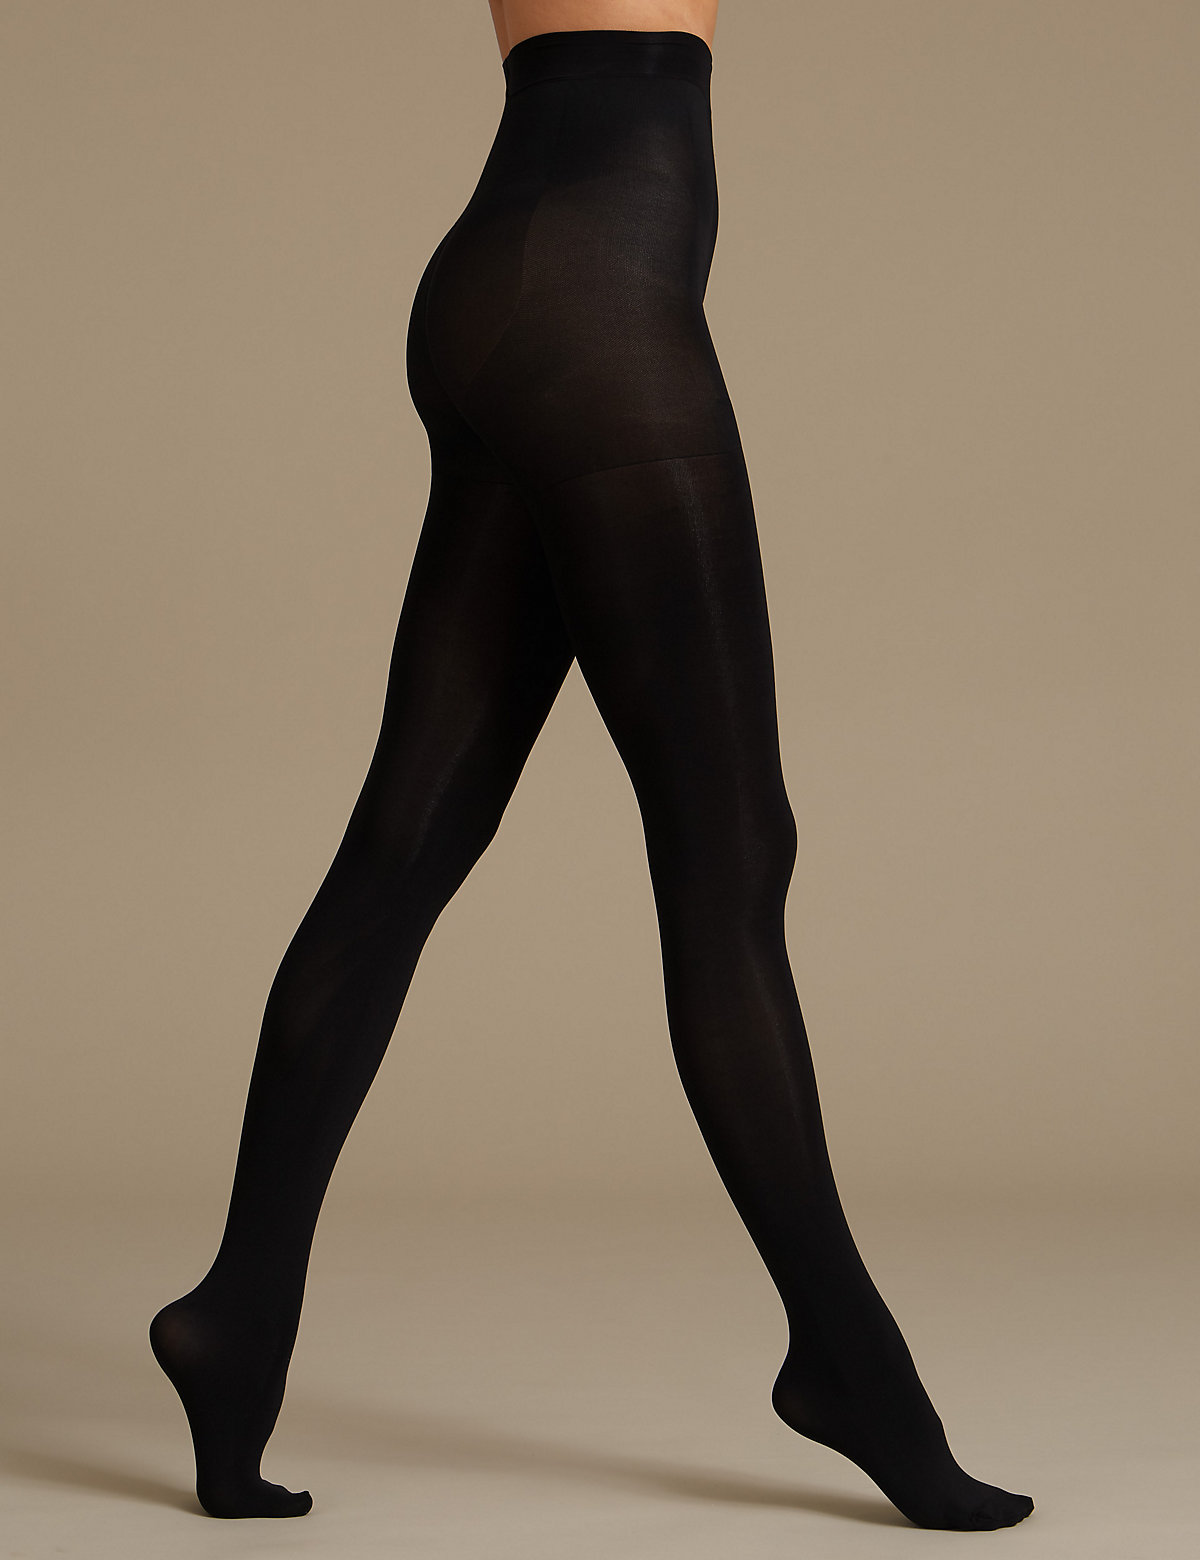 100 Denier Magicwear Cellulite Reducing Tights